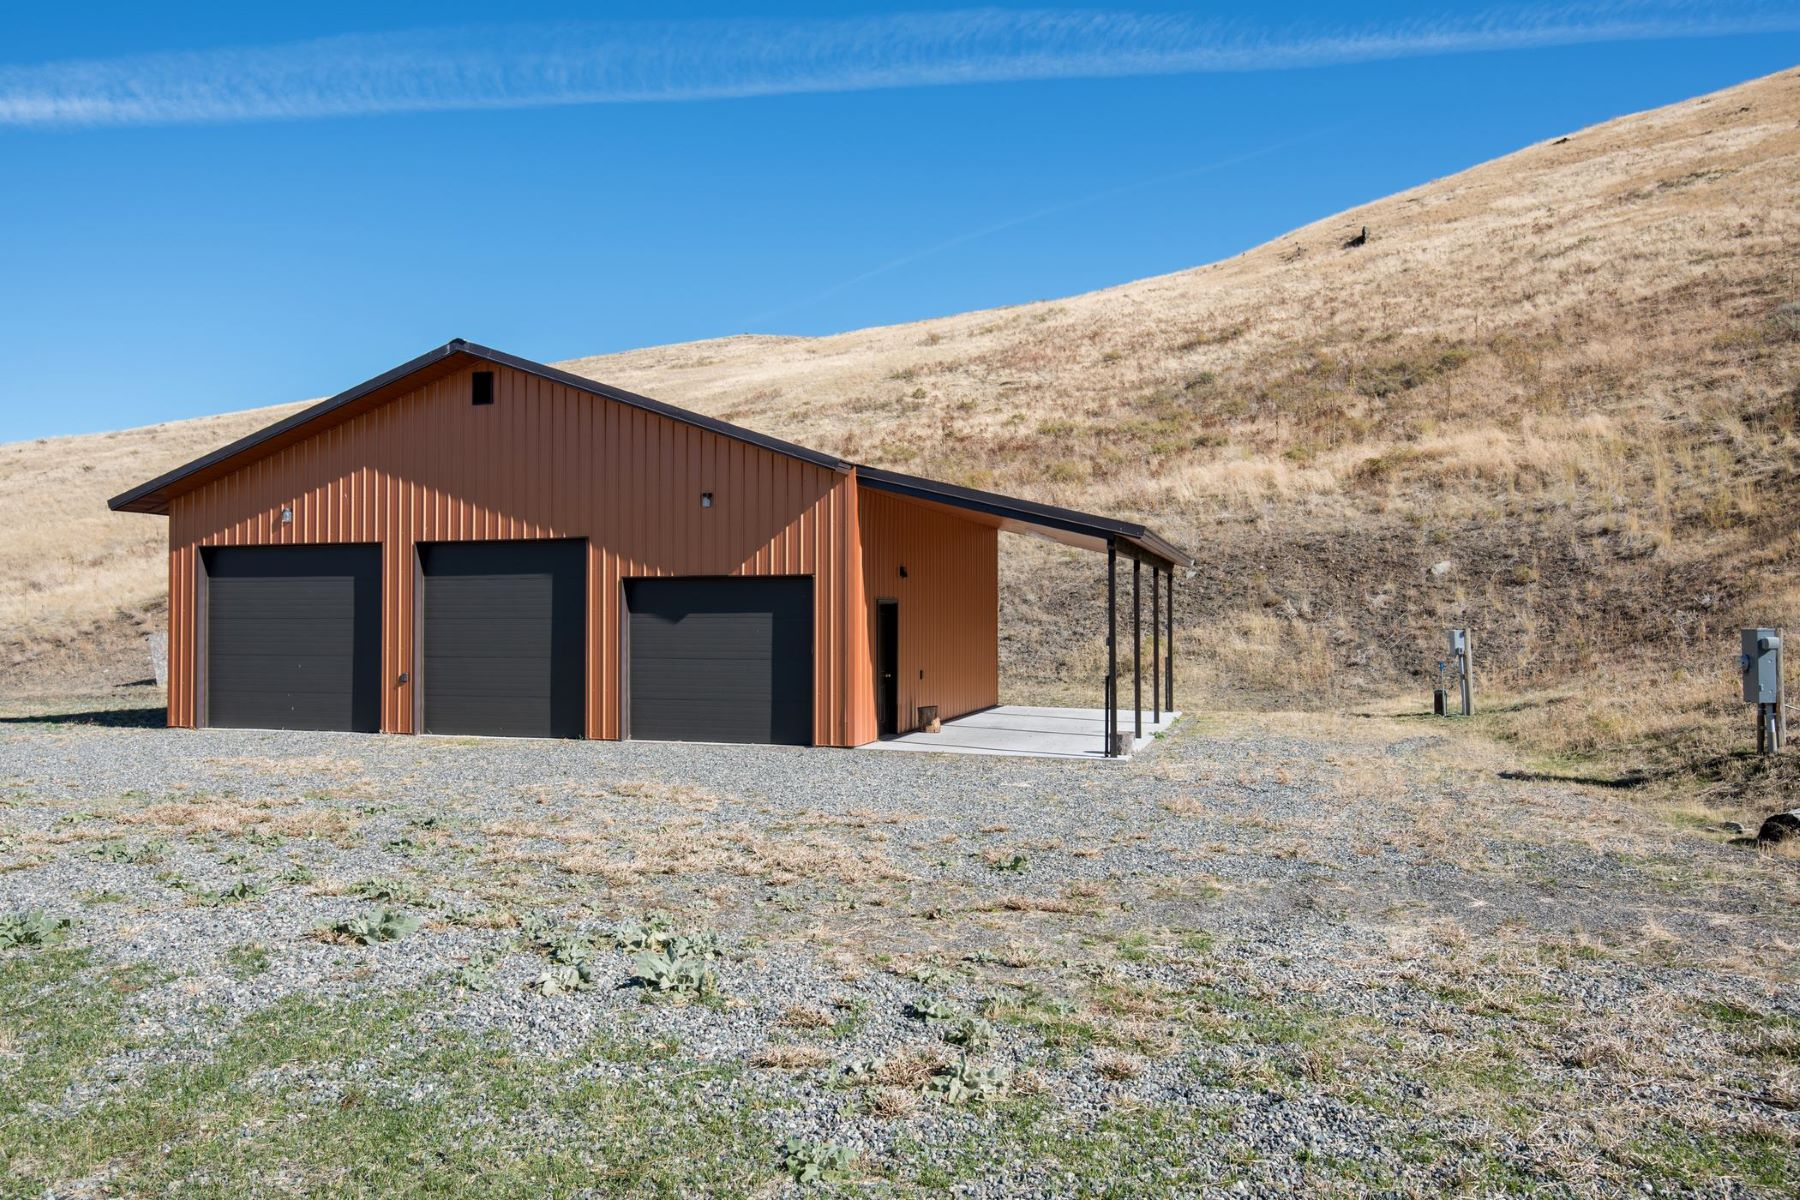 Additional photo for property listing at 250 Rapid River Vista, Pollock 250 Rapid River Vista Pollock, Idaho 83547